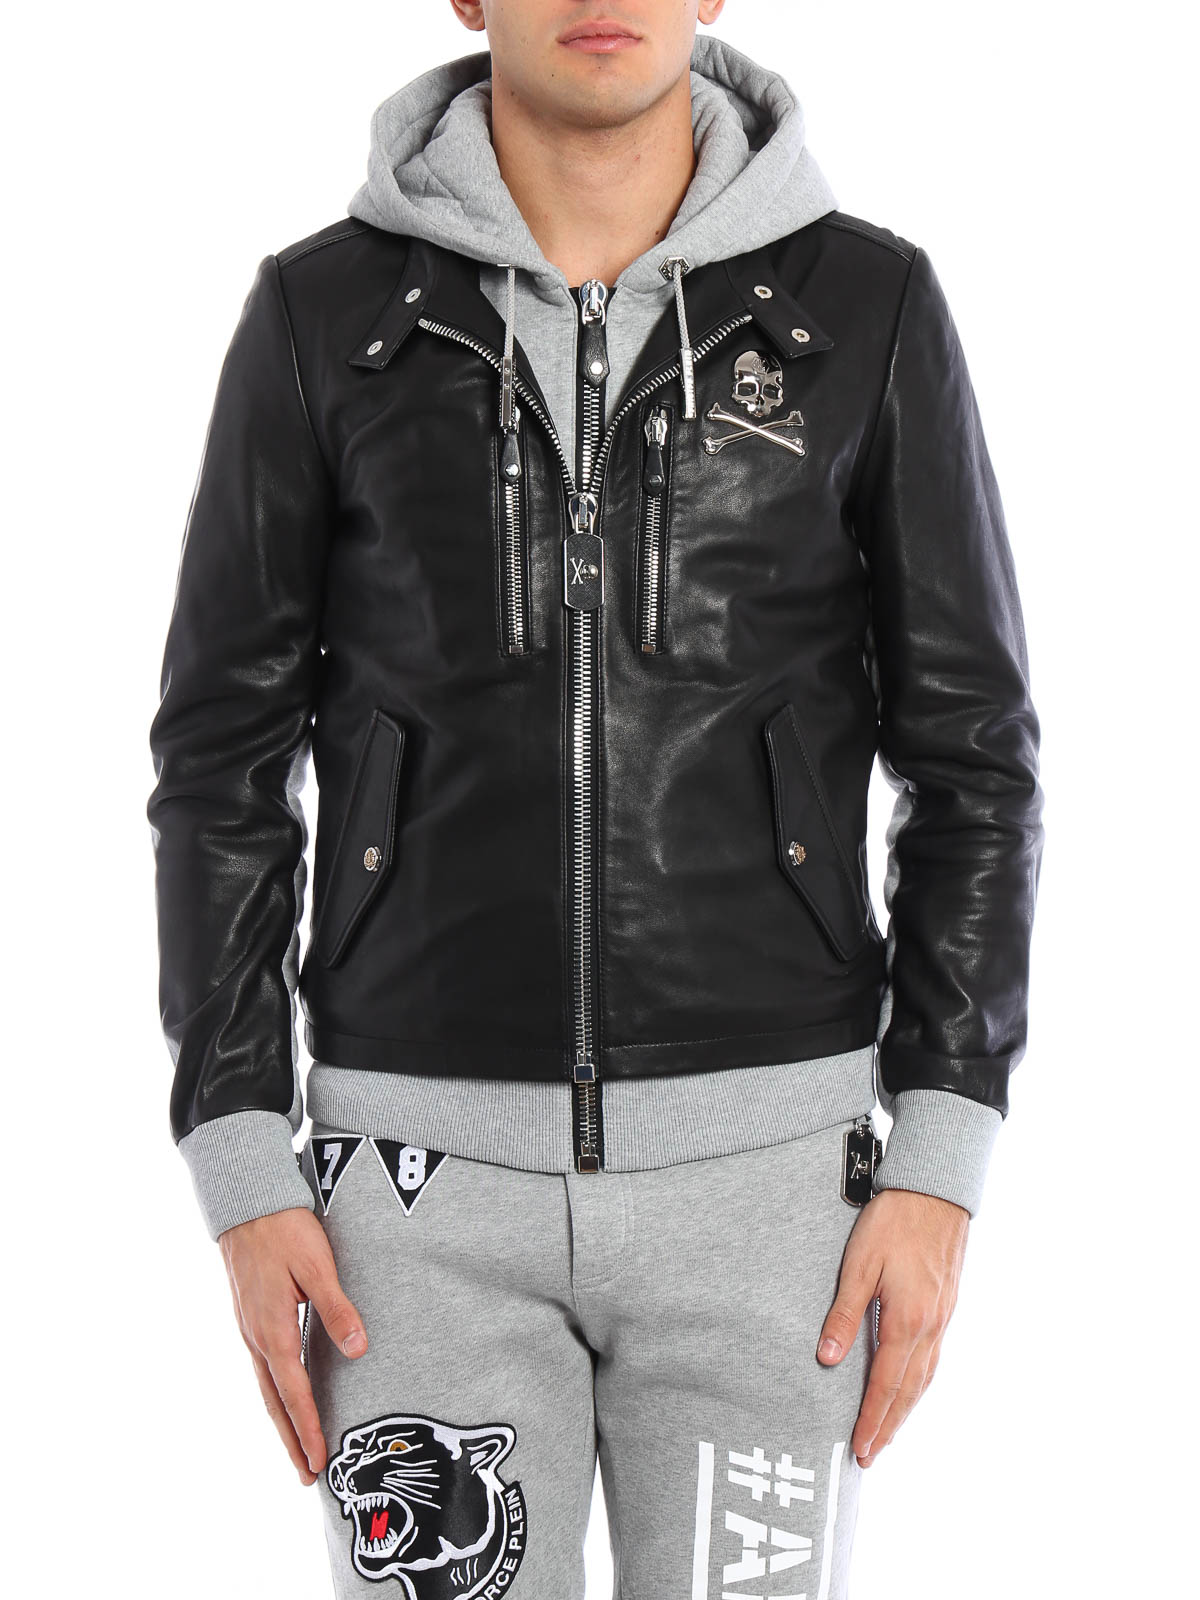 beaver creek jacket by philipp plein leather jacket ikrix. Black Bedroom Furniture Sets. Home Design Ideas